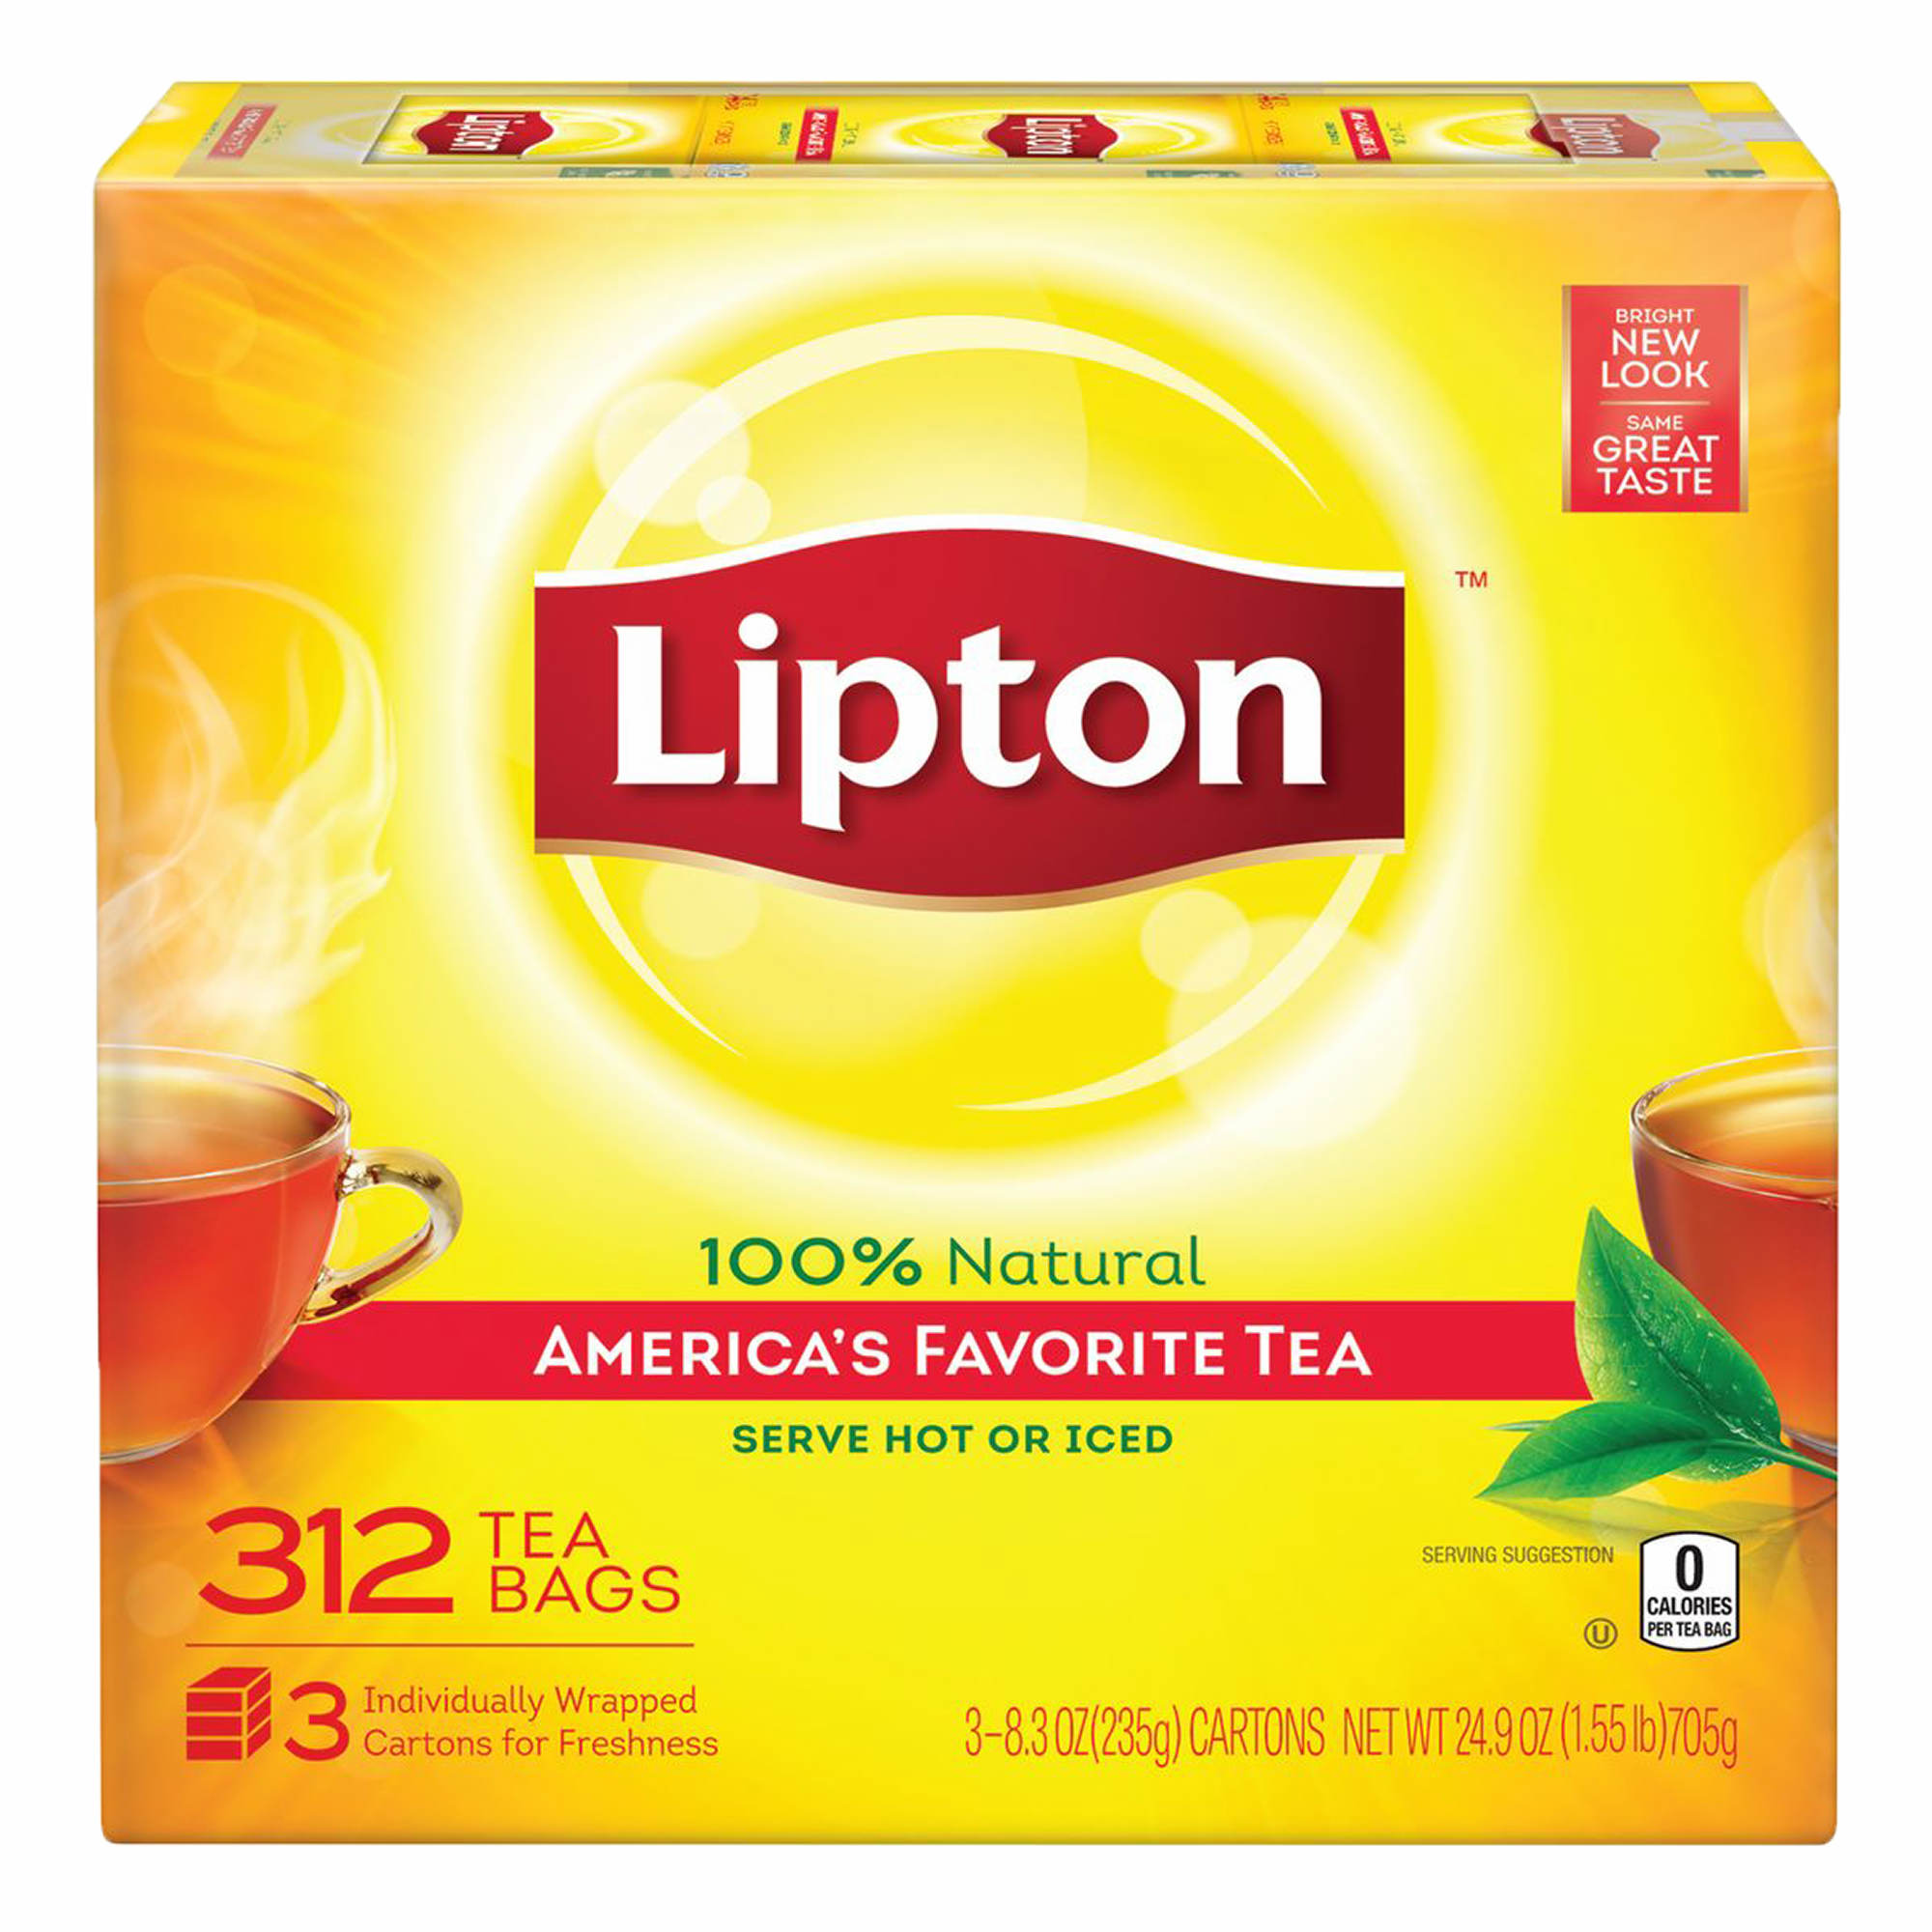 Lipton decaffeinated tea is crafted with only % real tea leaves, fresh and high-quality, which are decaffeinated with pure spring water and effervescence for a naturally uplifting taste.